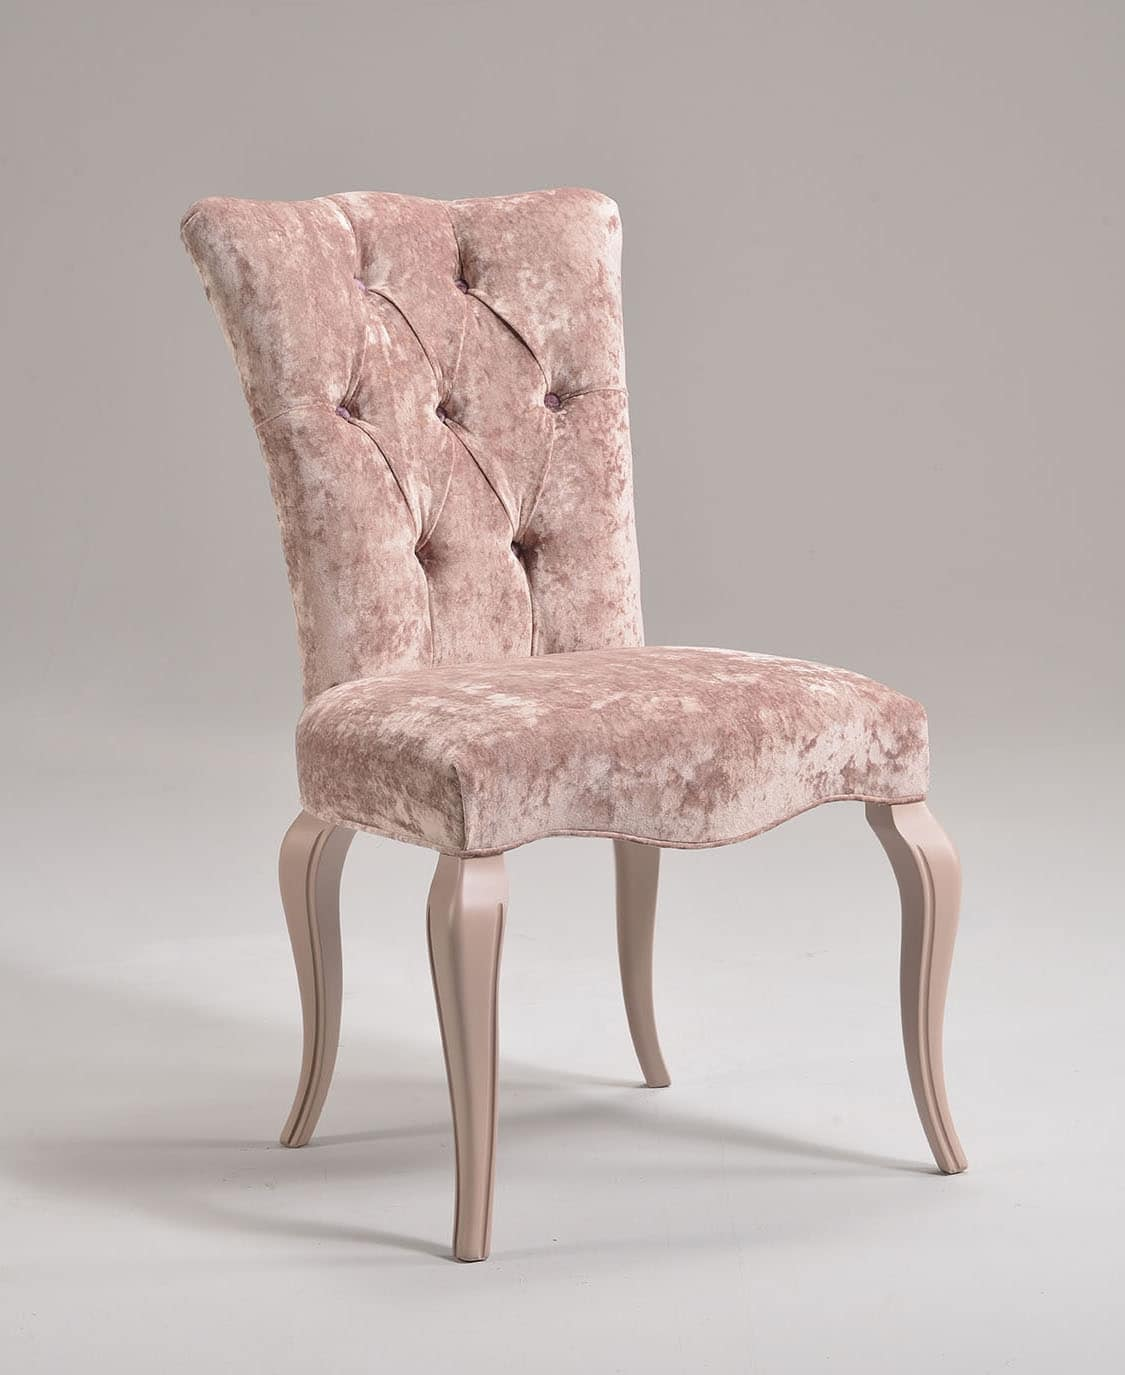 stool chair in chinese chairperson classic beechwood, padded, customizable   idfdesign